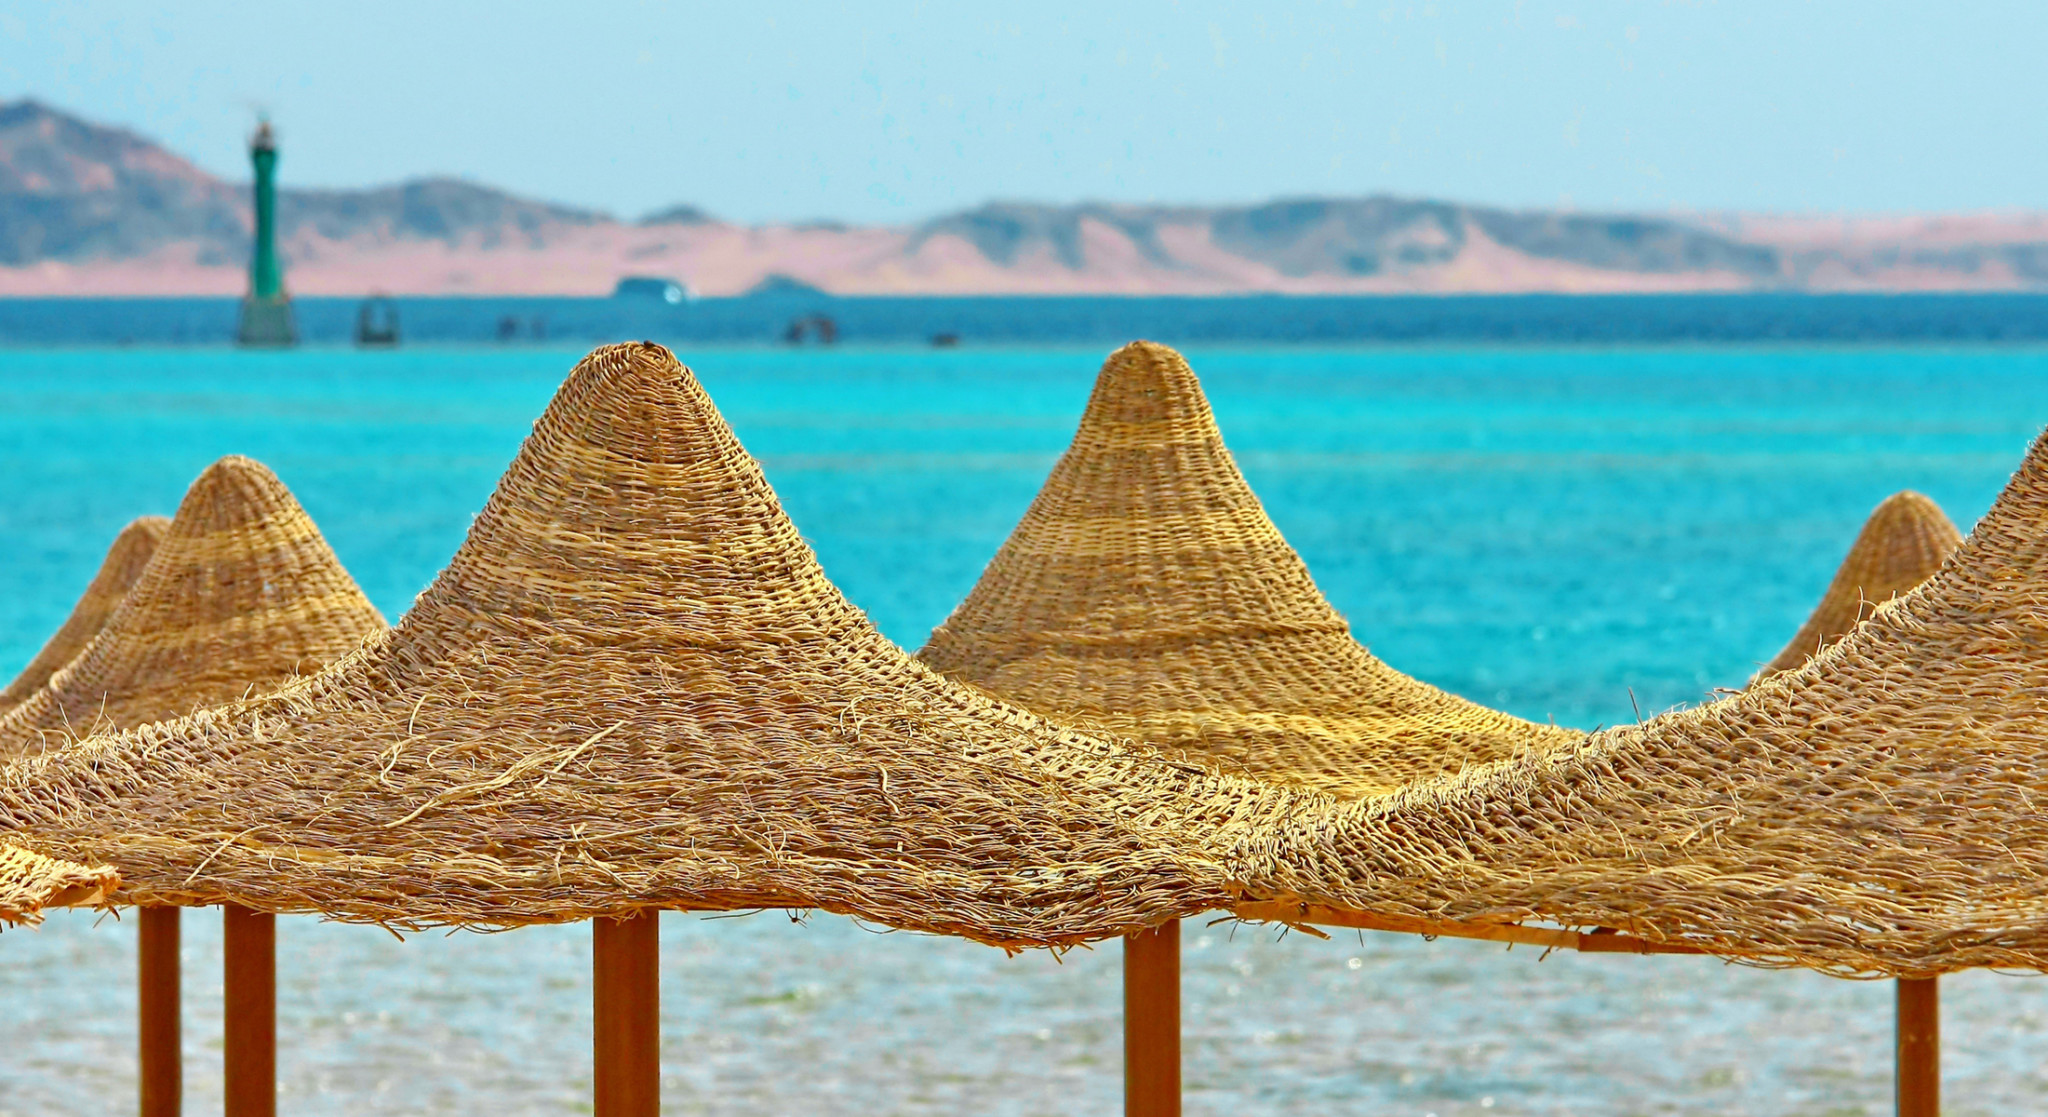 Umbrellas-and-Red-Sea-on-mount-background-177531415_2201x1200